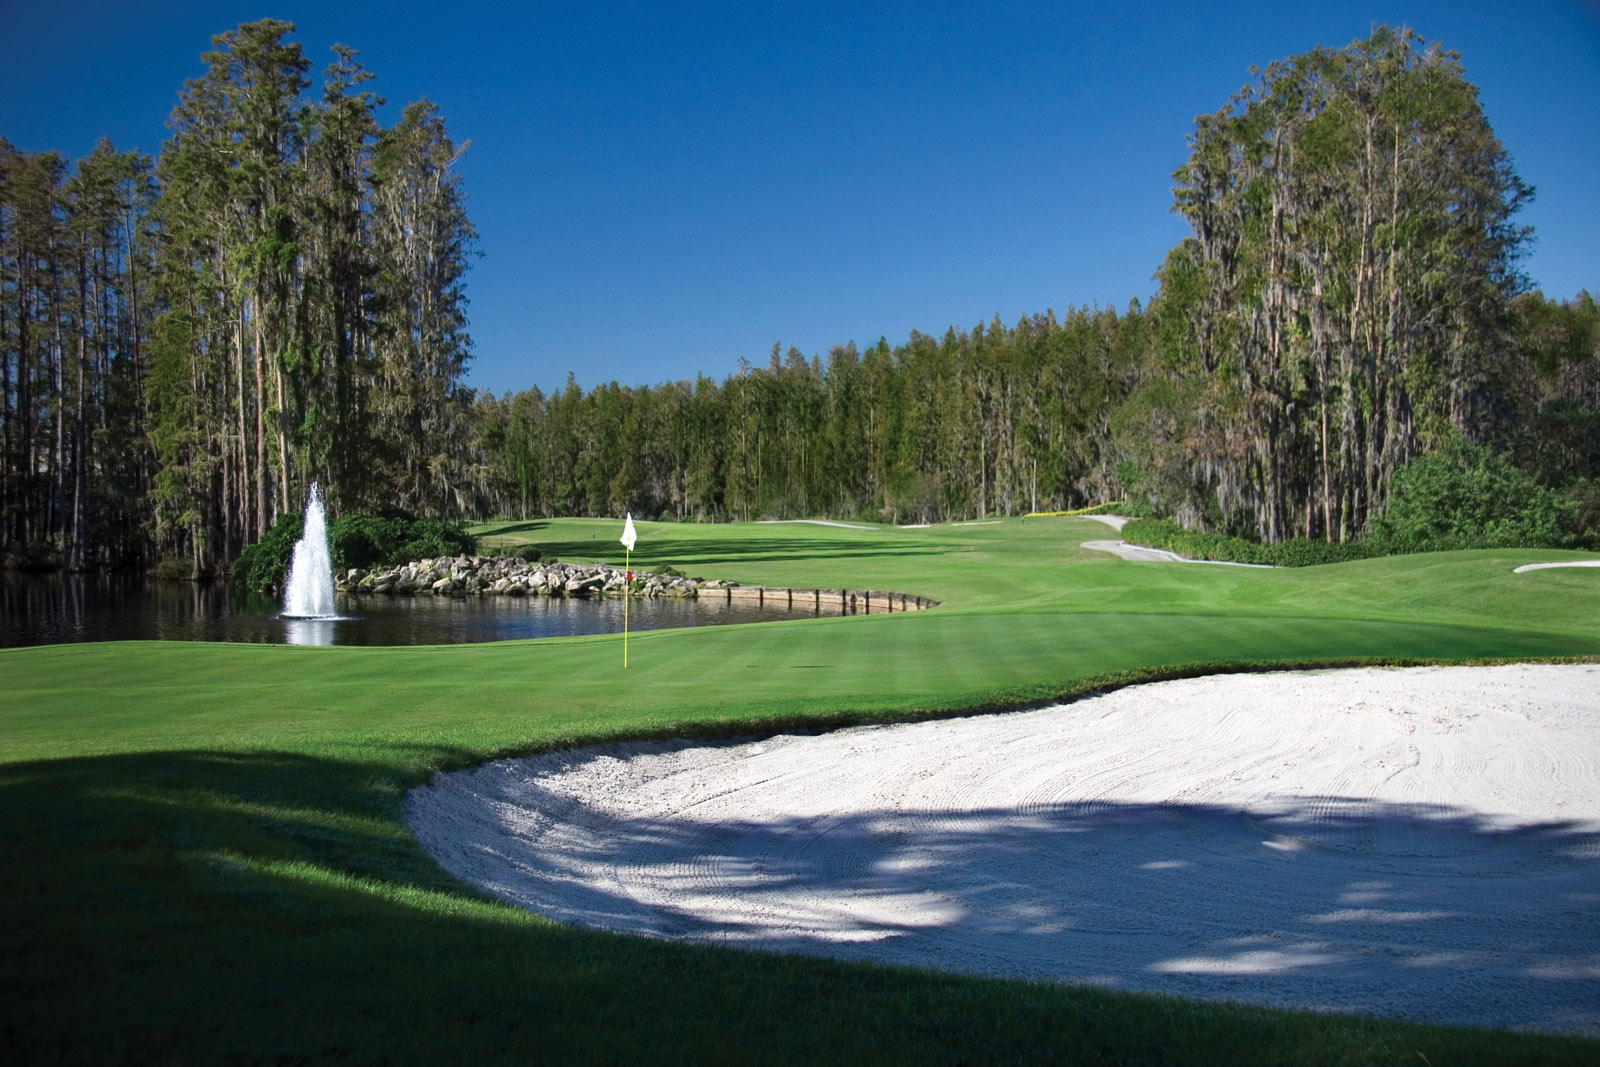 Saddlebrook Resort - 36 holes of golf on site